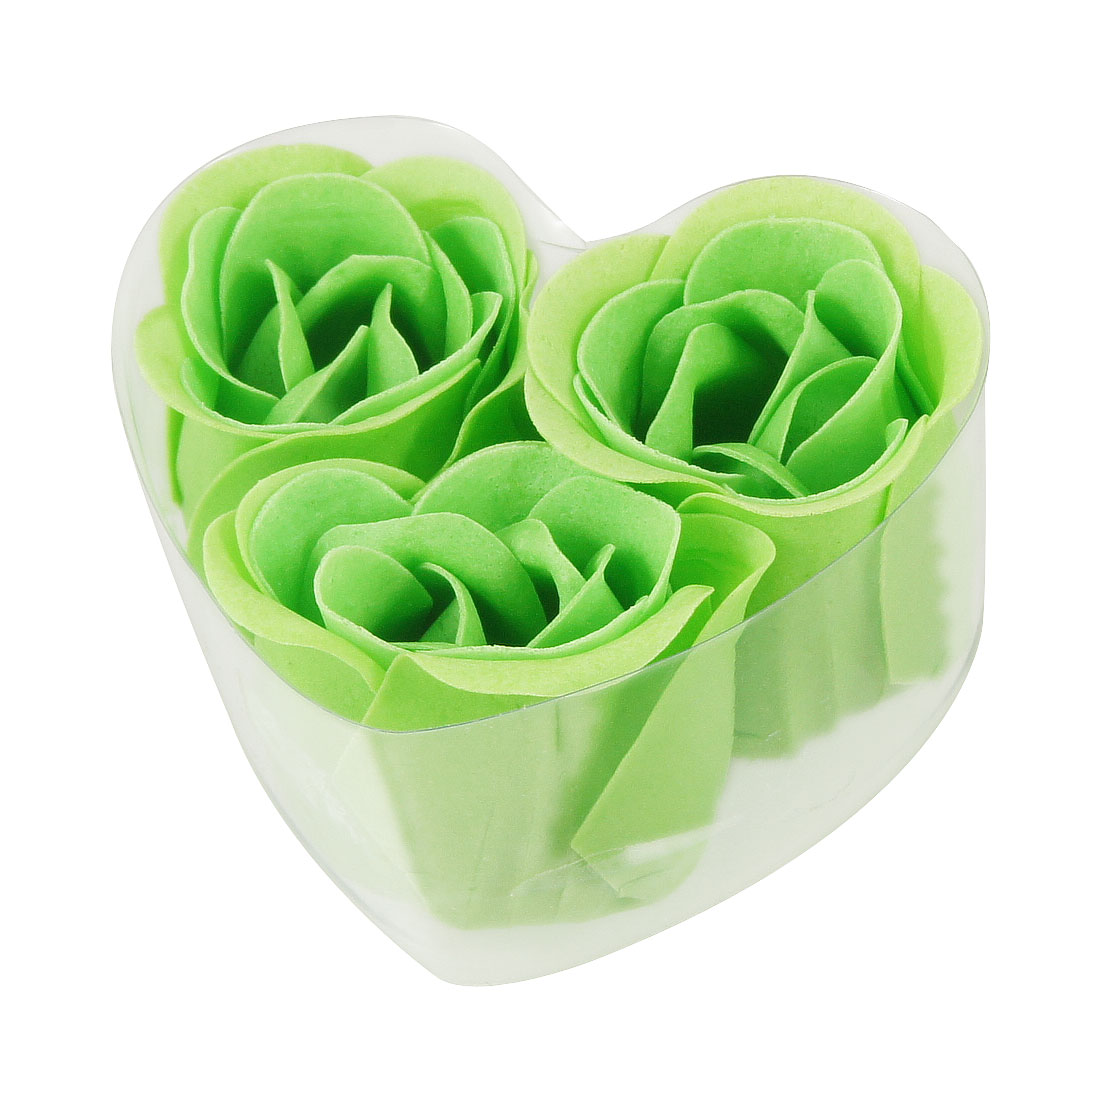 Green Faux Fragrant Bathing Bath Soap Rose Petals 3 Pcs w Heart Box